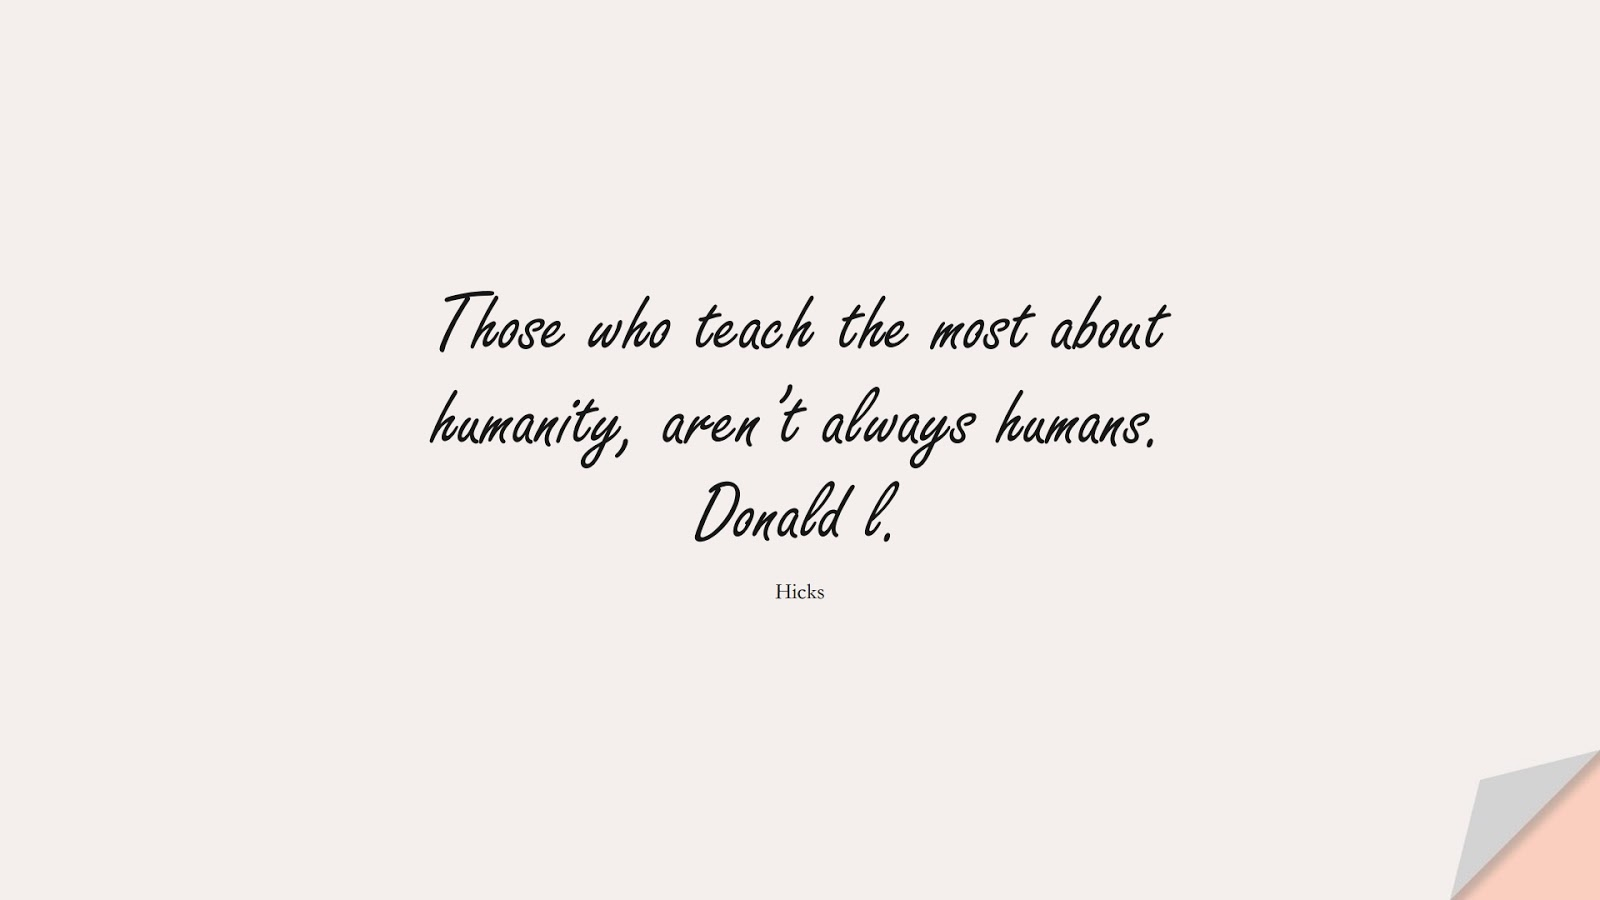 Those who teach the most about humanity, aren't always humans. Donald l. (Hicks);  #HumanityQuotes